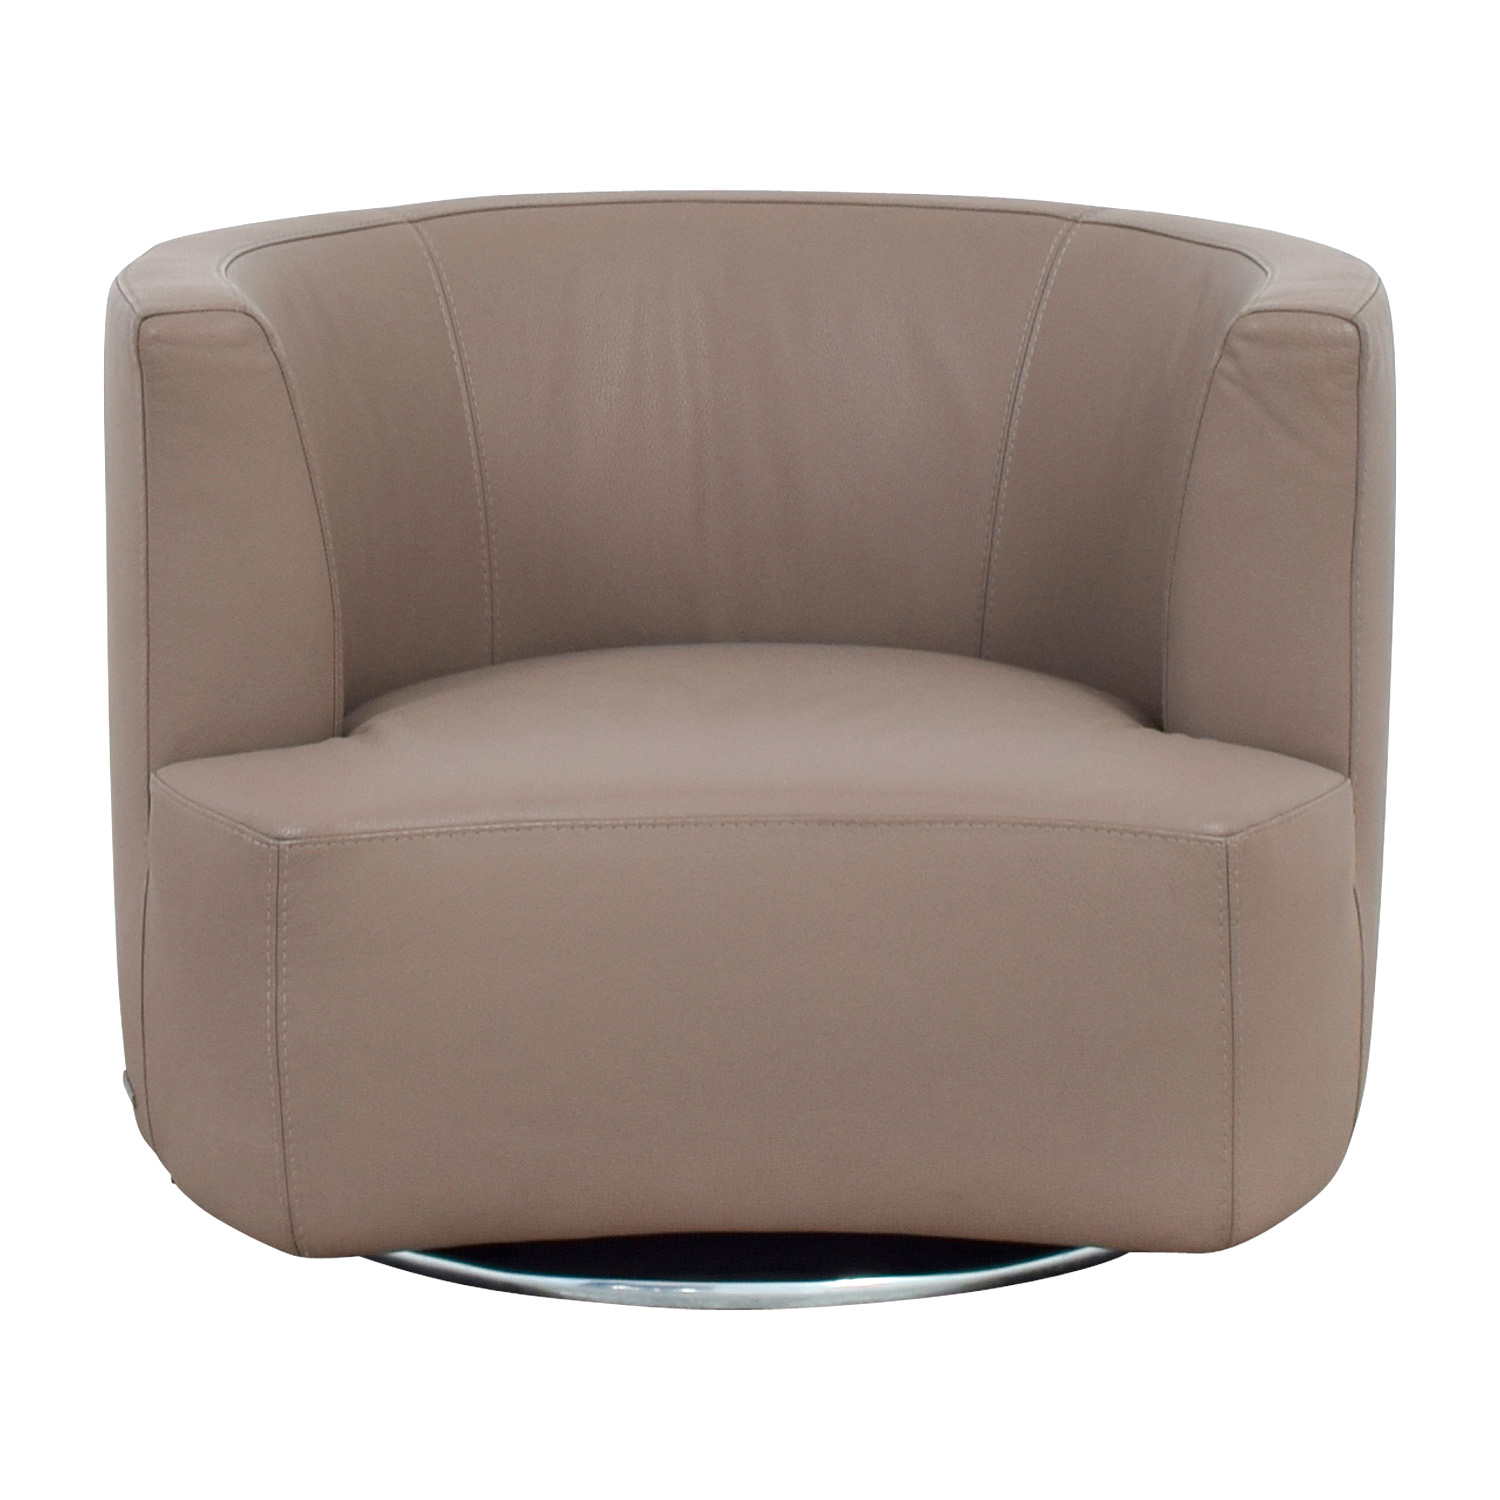 Roche Bobois Roche Bobois Tan Leather Swivel Chair coupon